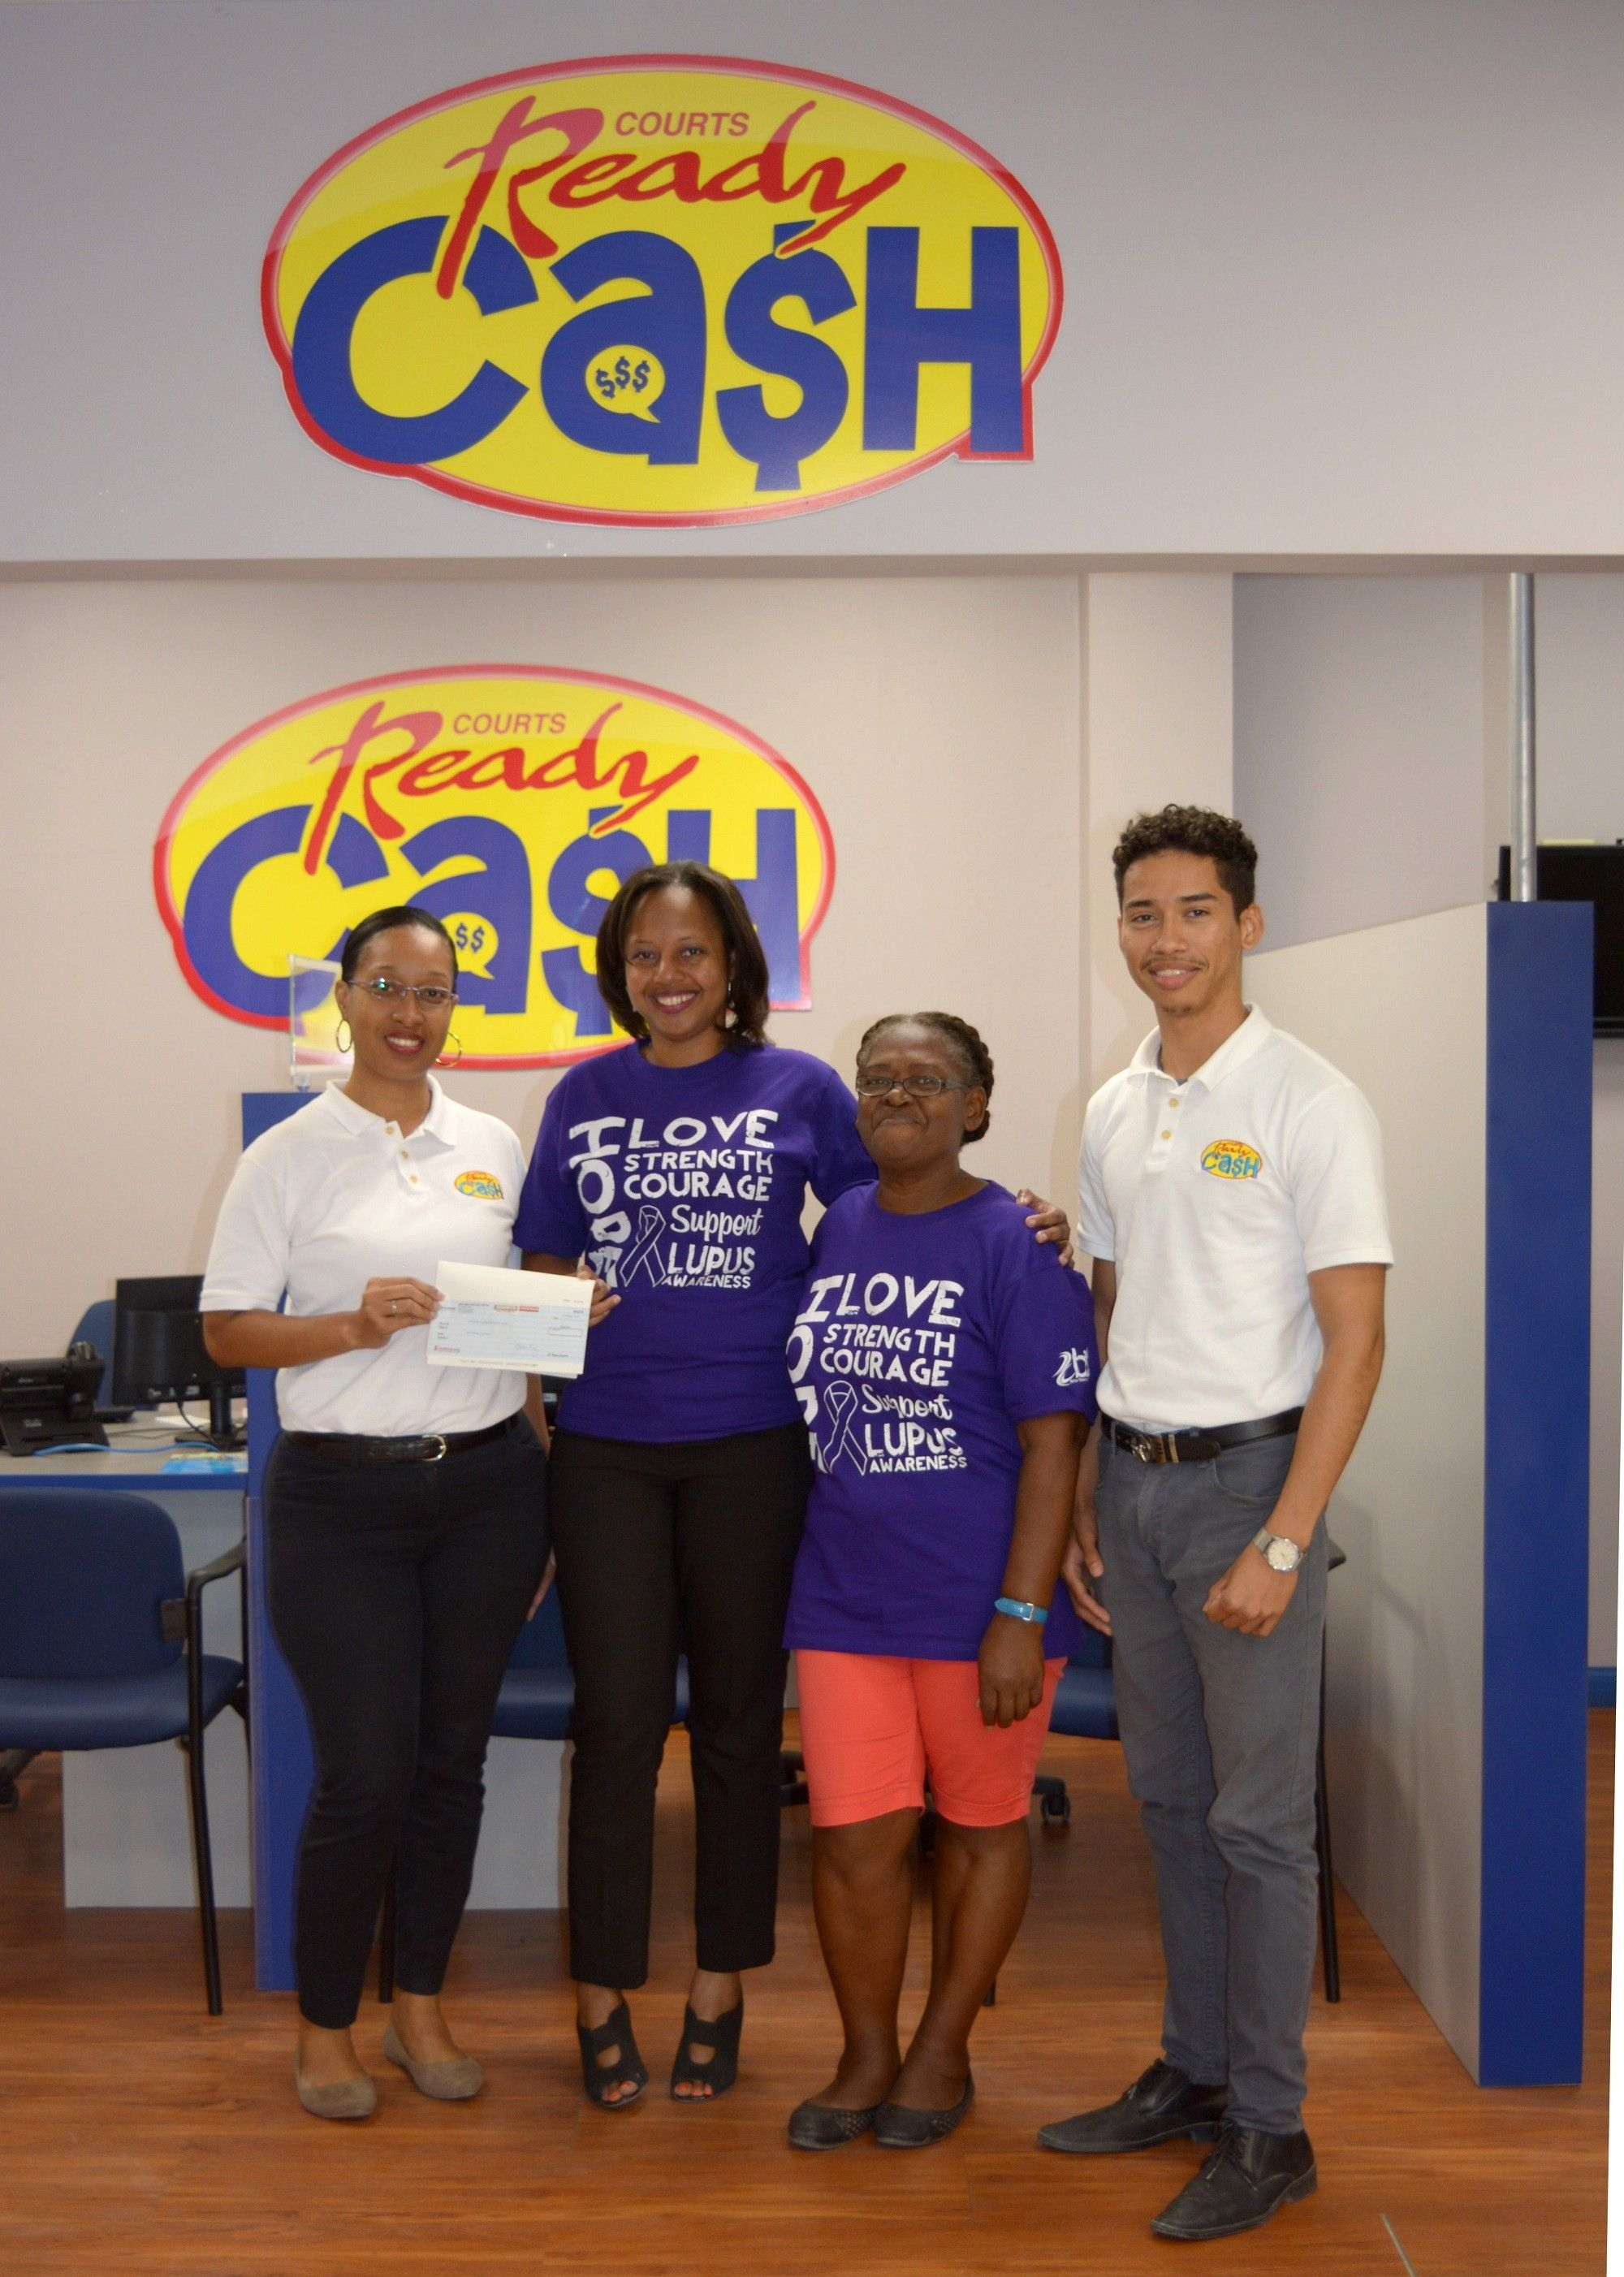 Courts Ready Cash presents a cheque of $1,000 to the Lupus and RA Association of Belize.